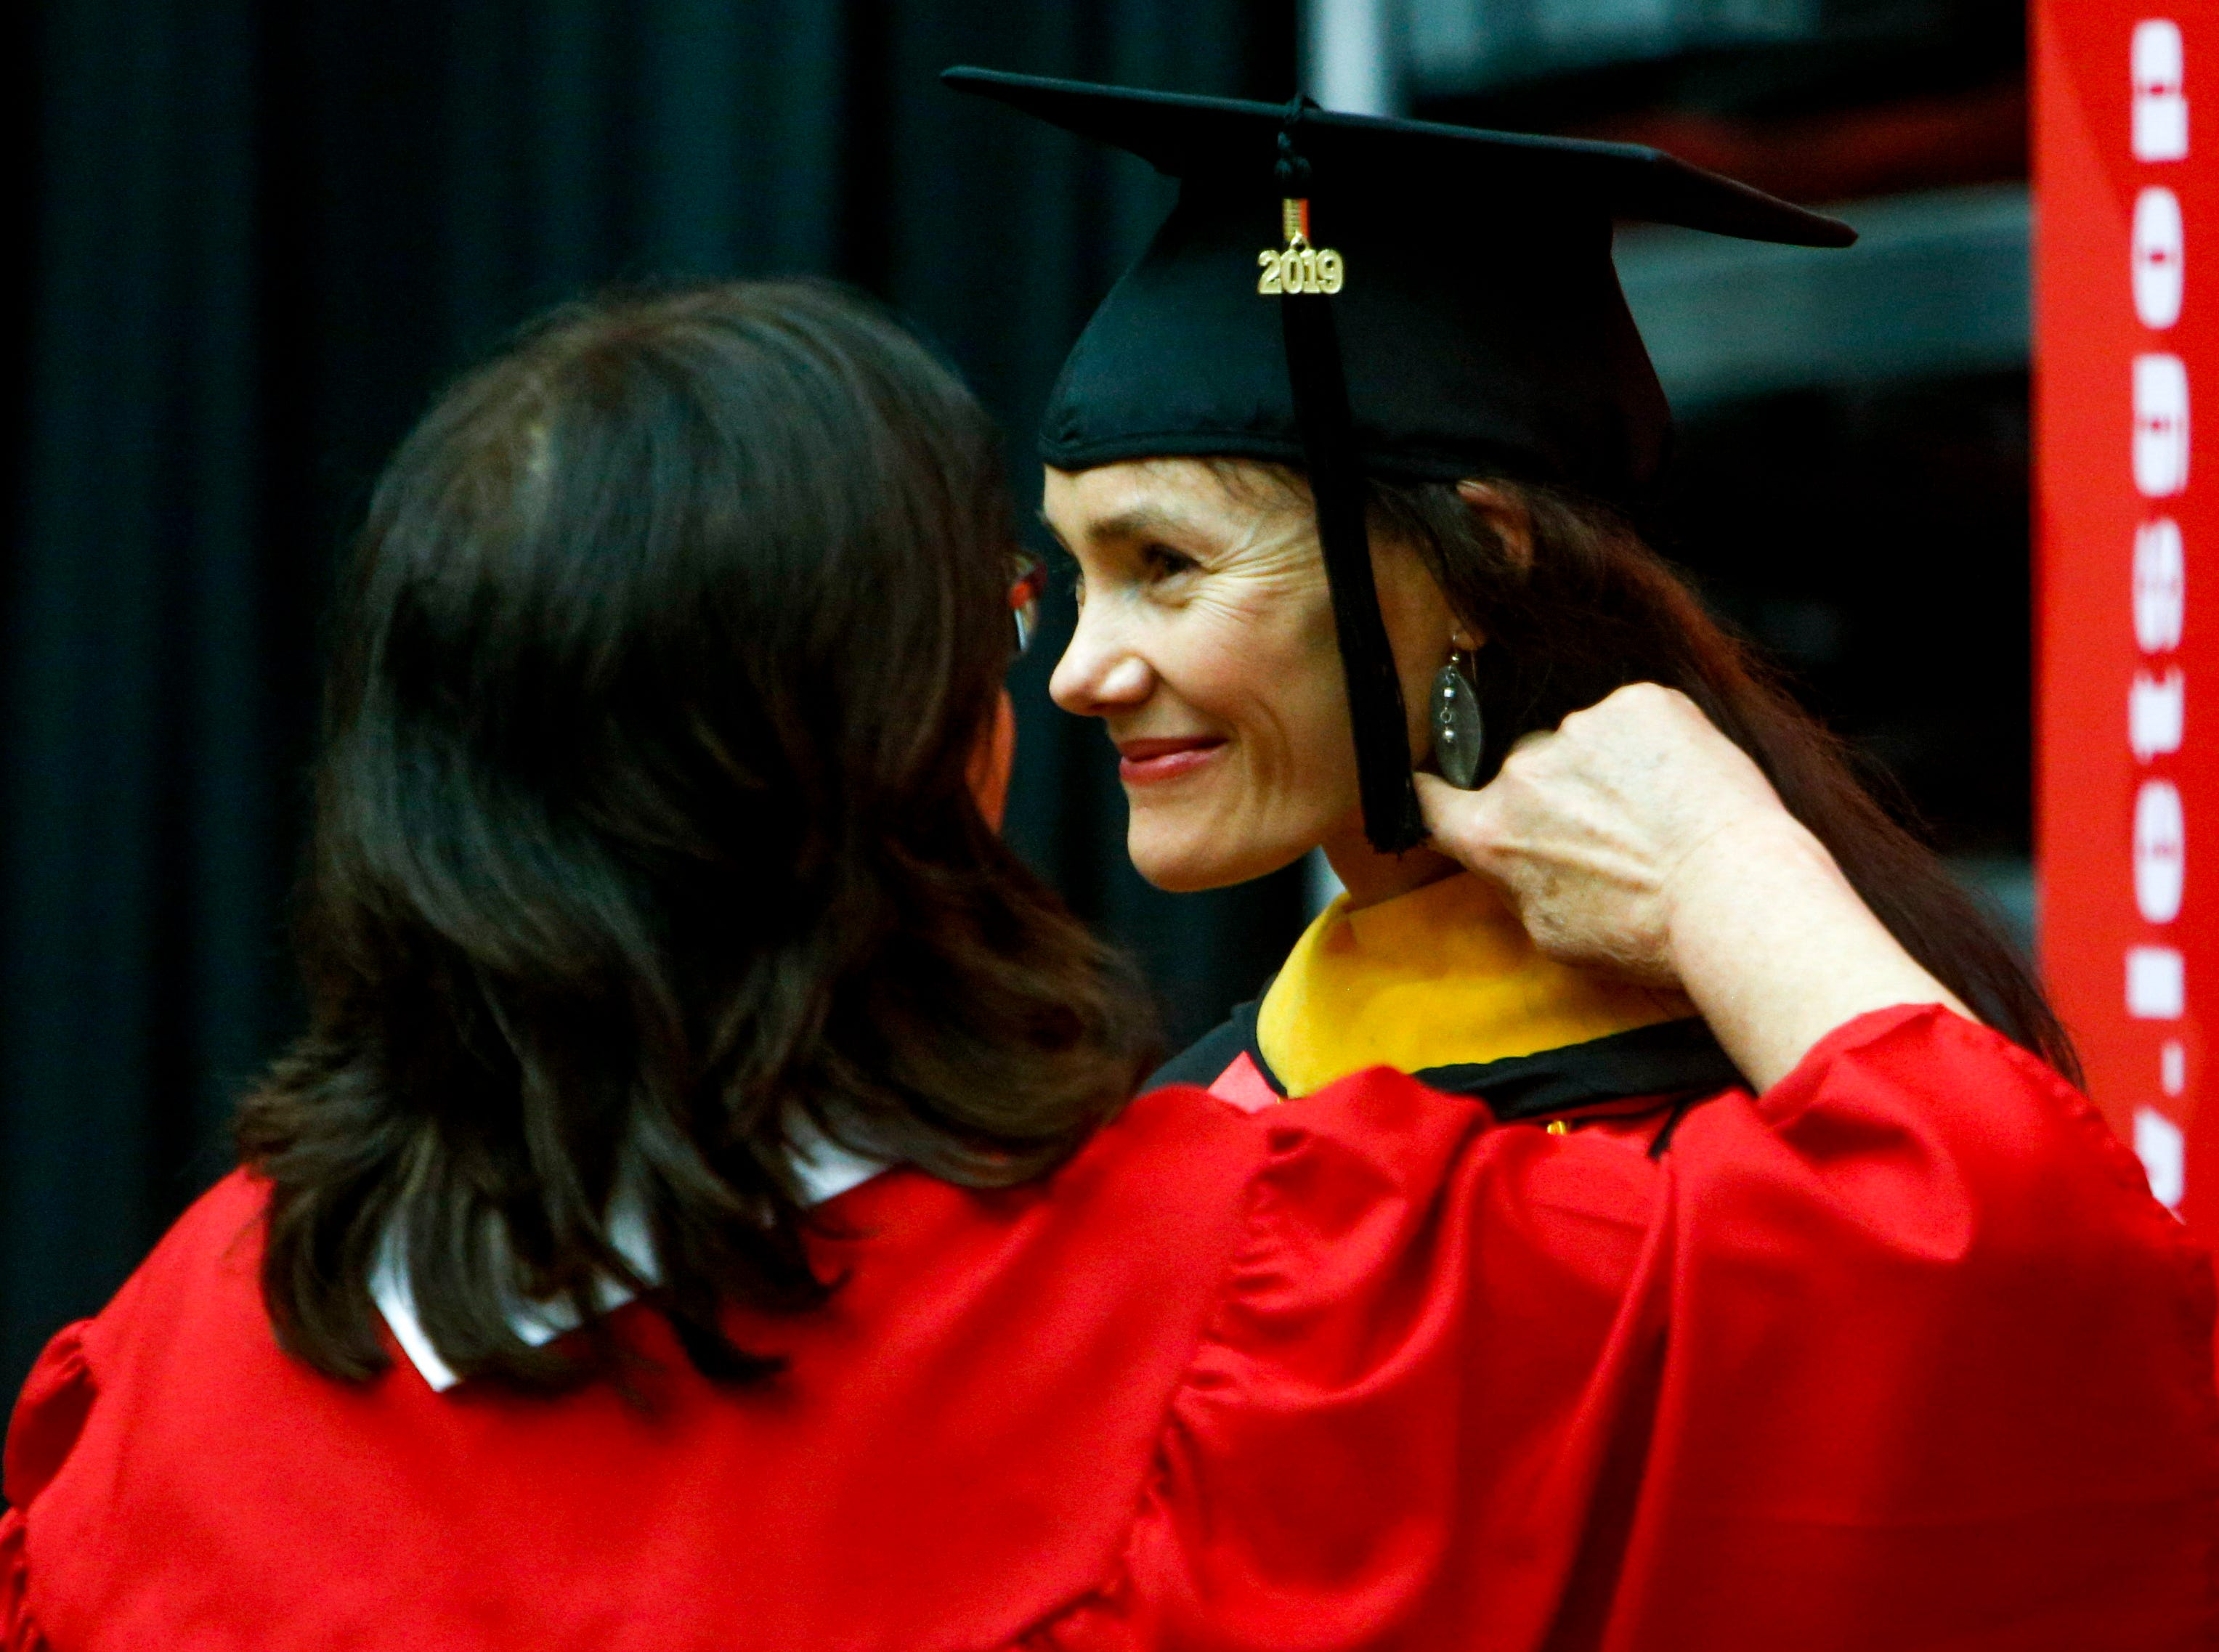 An administrator helps adjust the hair of a graduate student at the Austin Peay spring commencement ceremony 2019 for College of Business and College of STEM at Winfield Dunn Center in Clarksville, Tenn., on Friday, May 3, 2019.